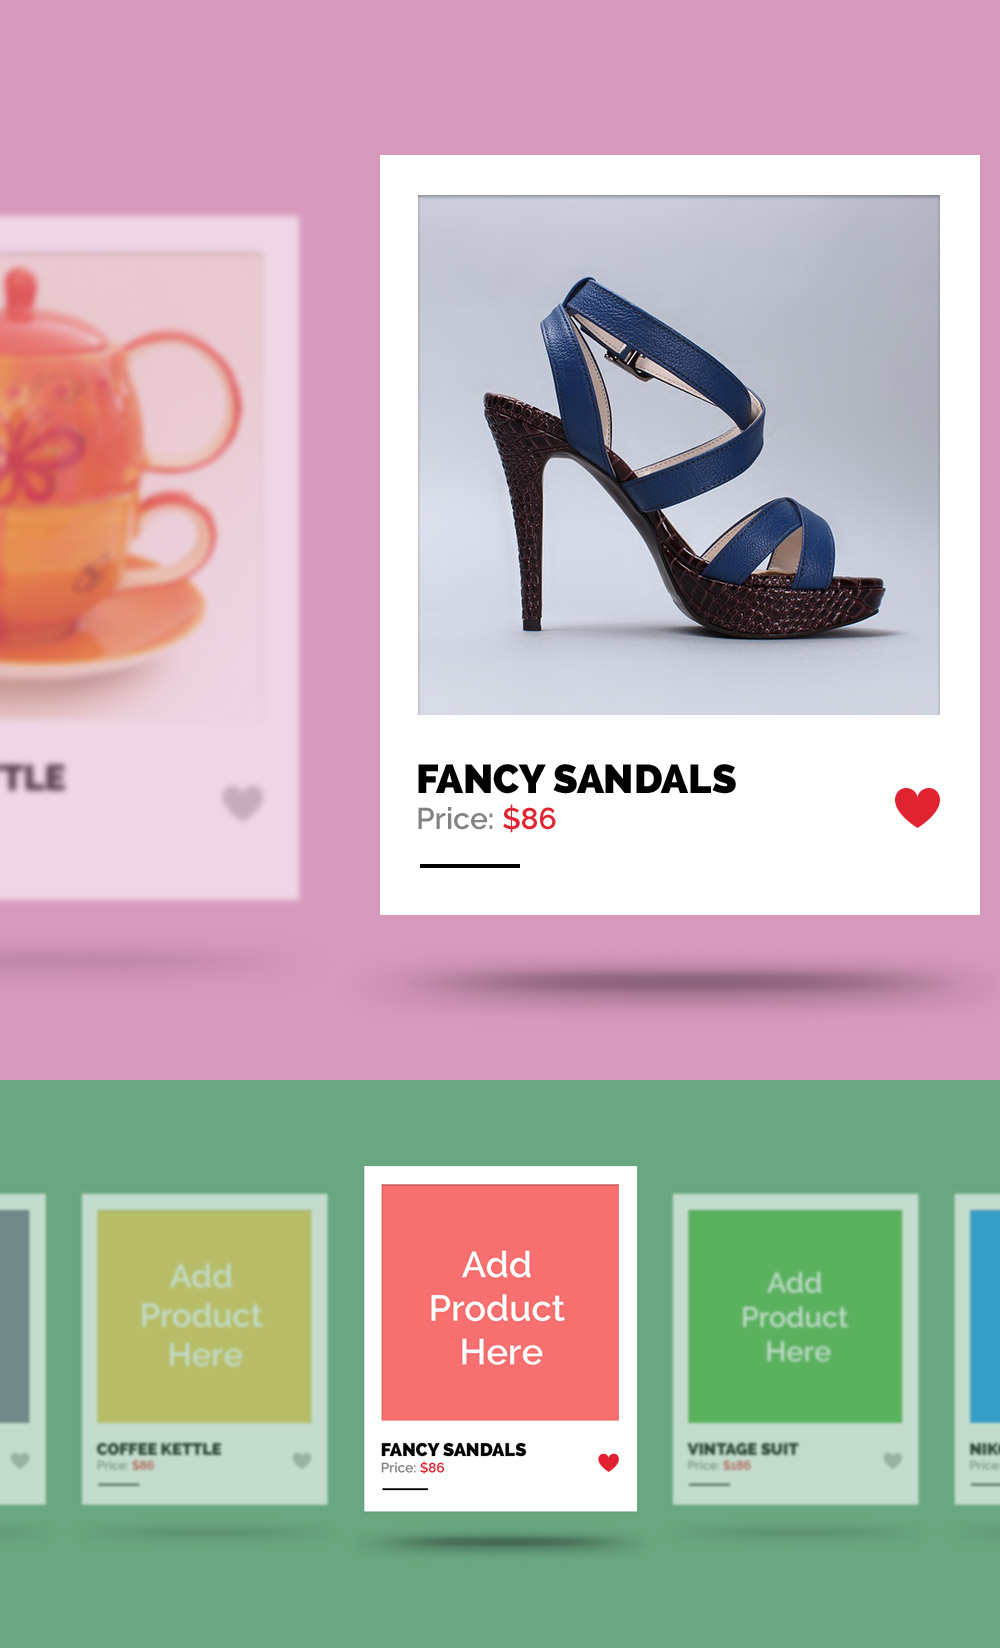 http://www.graphicsfuel.com/wp-content/uploads/2015/04/fancy-product-carousel-full-view.jpg